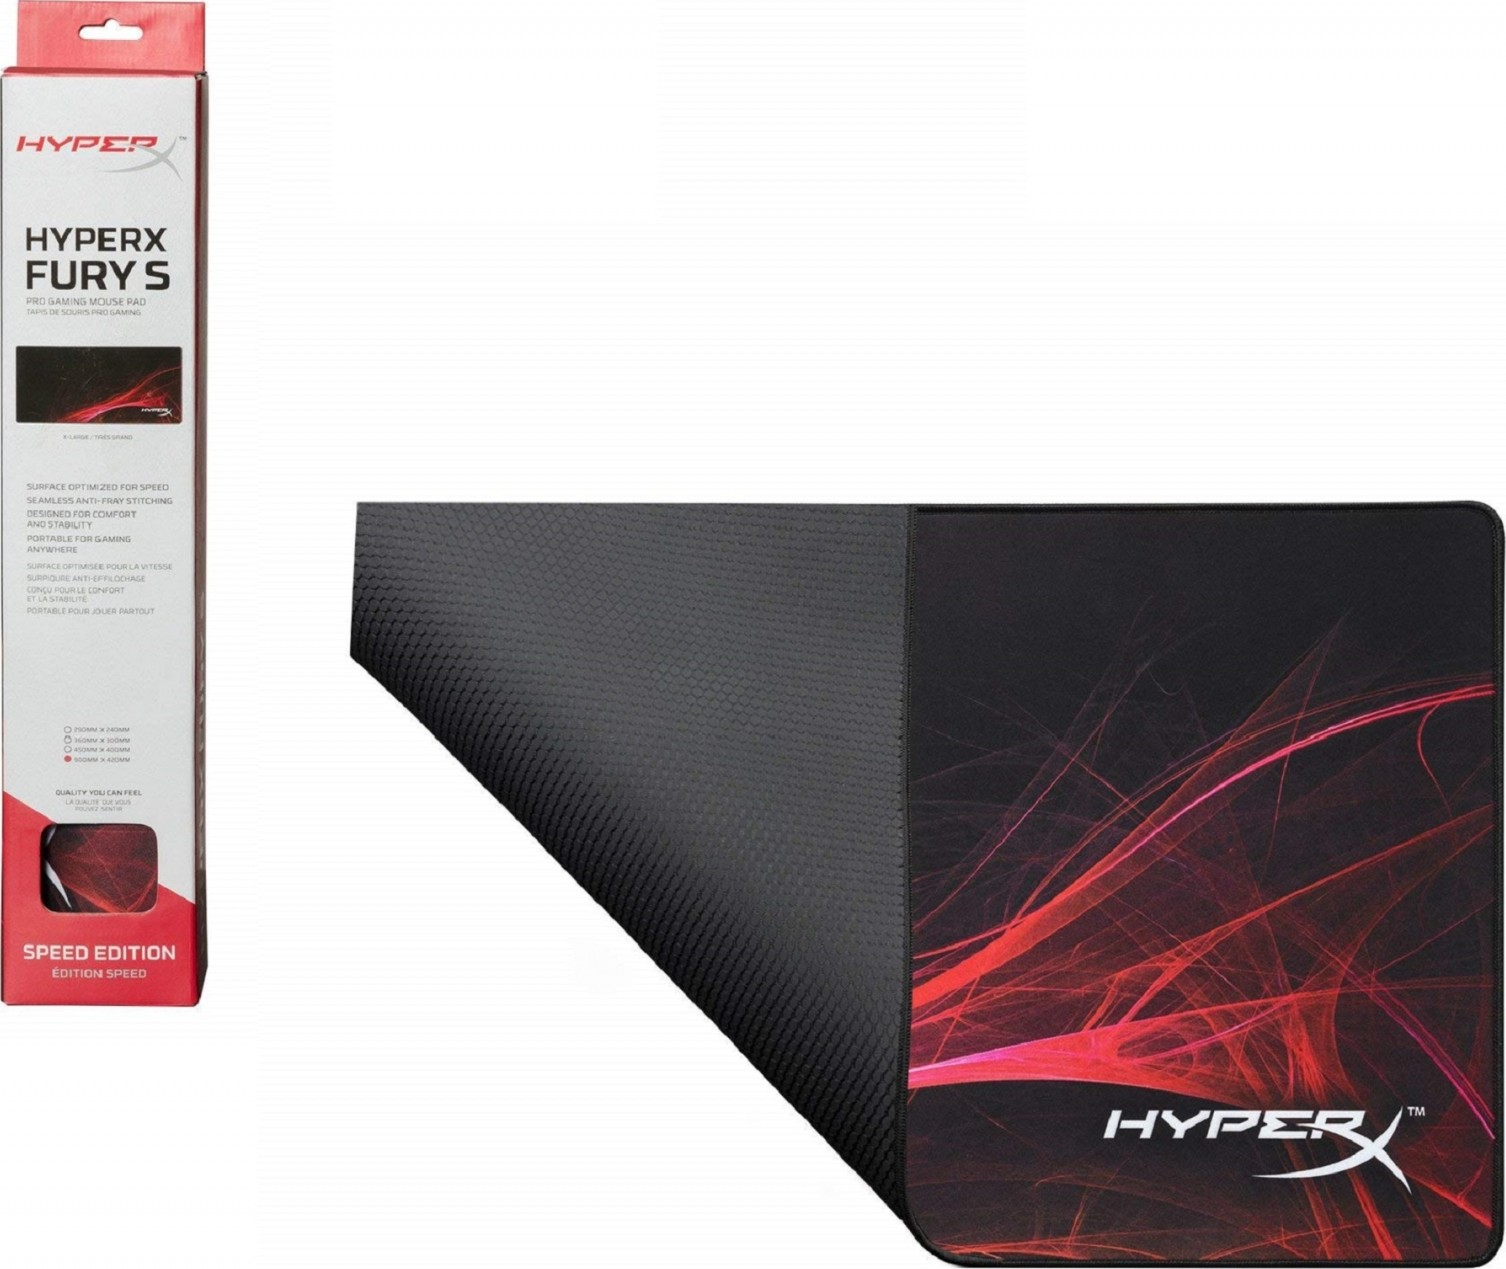 Pro Gaming Mouse Pad X-Large Stitched Anti-Fray Edges HyperX FURY S